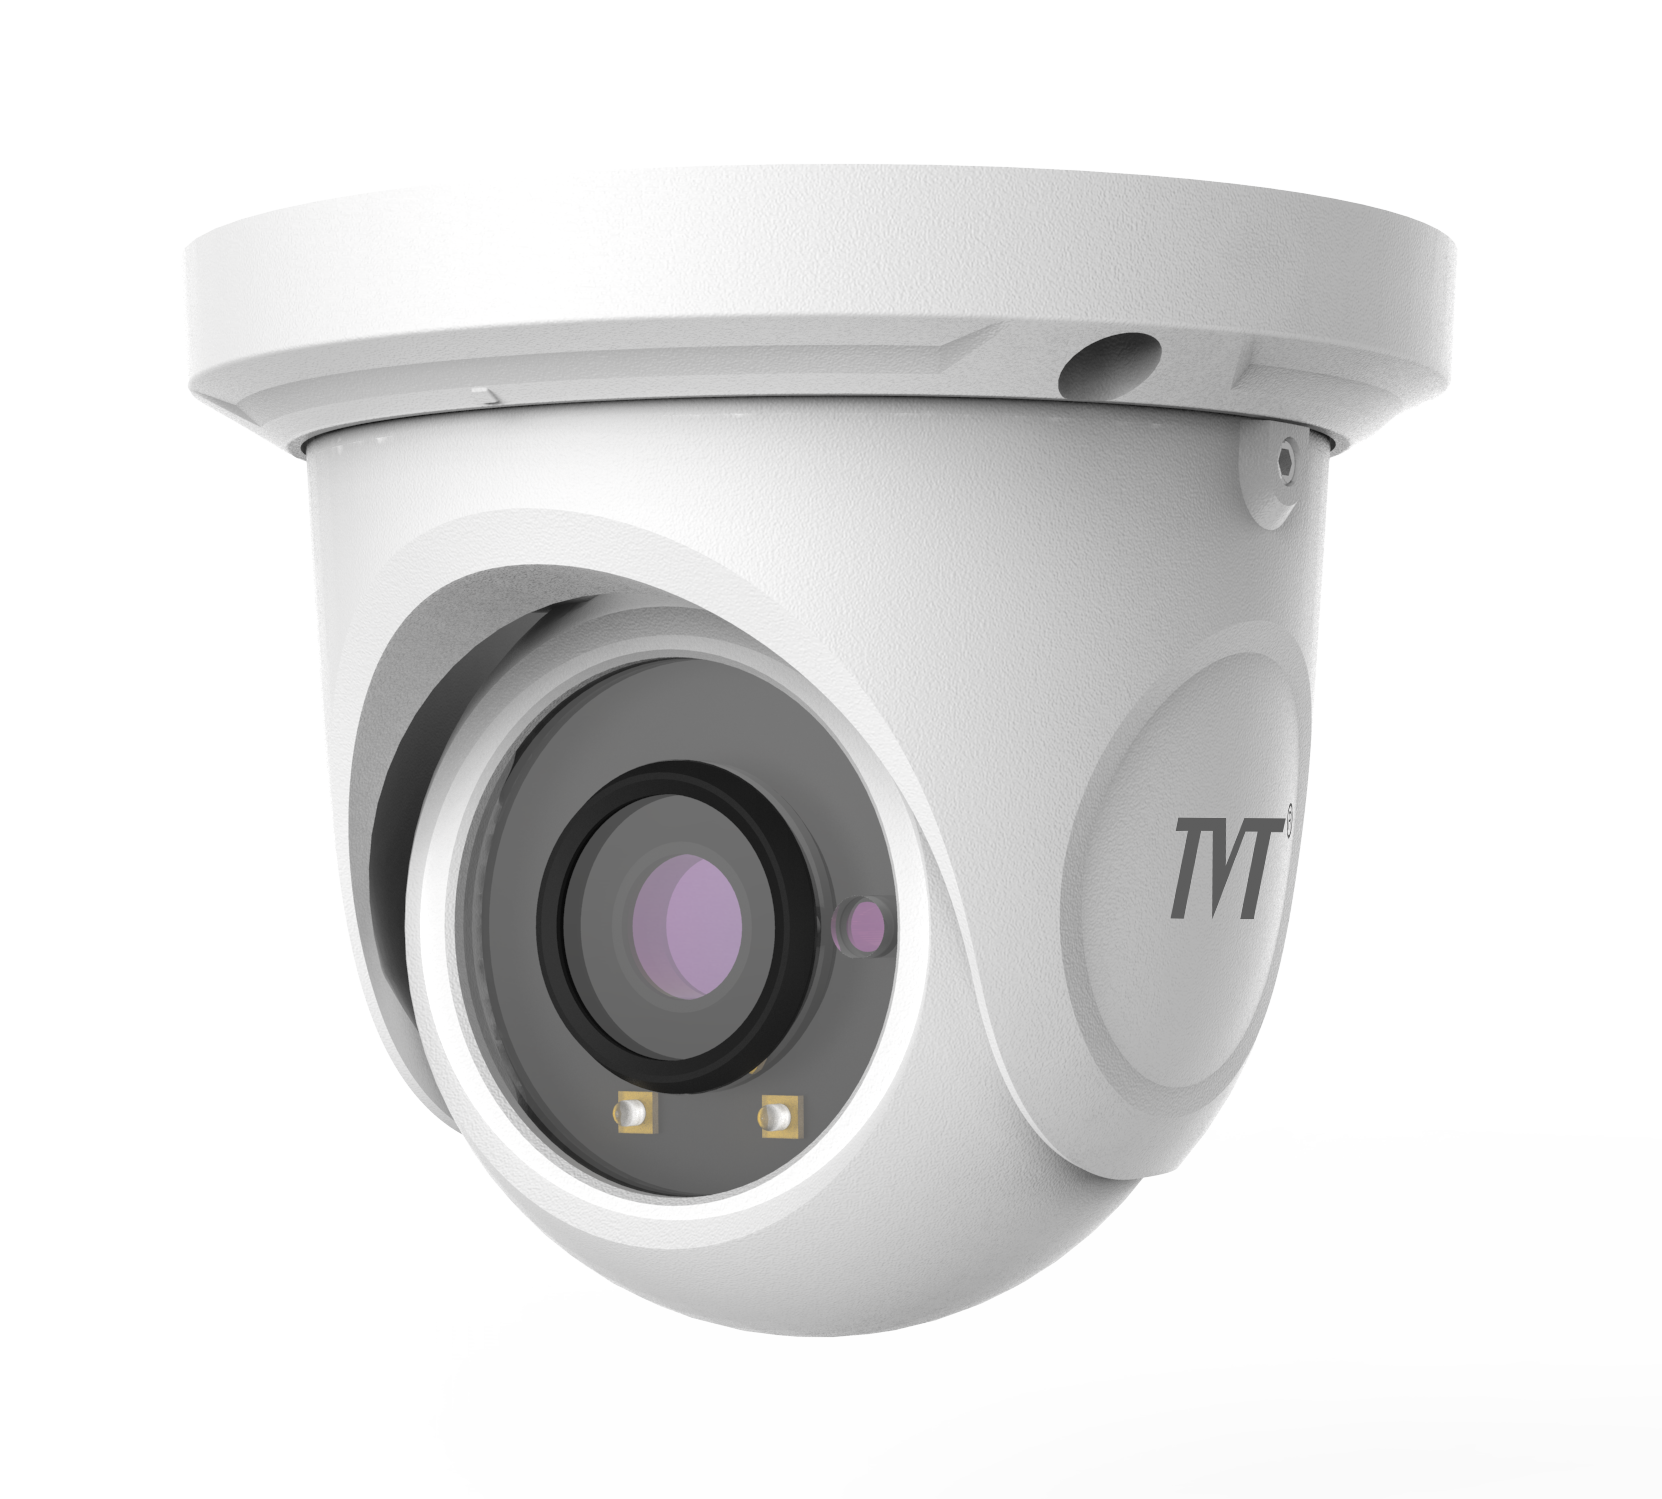 Camera IP 2MP TVT TD-9524S1 (D/PE/AR1)